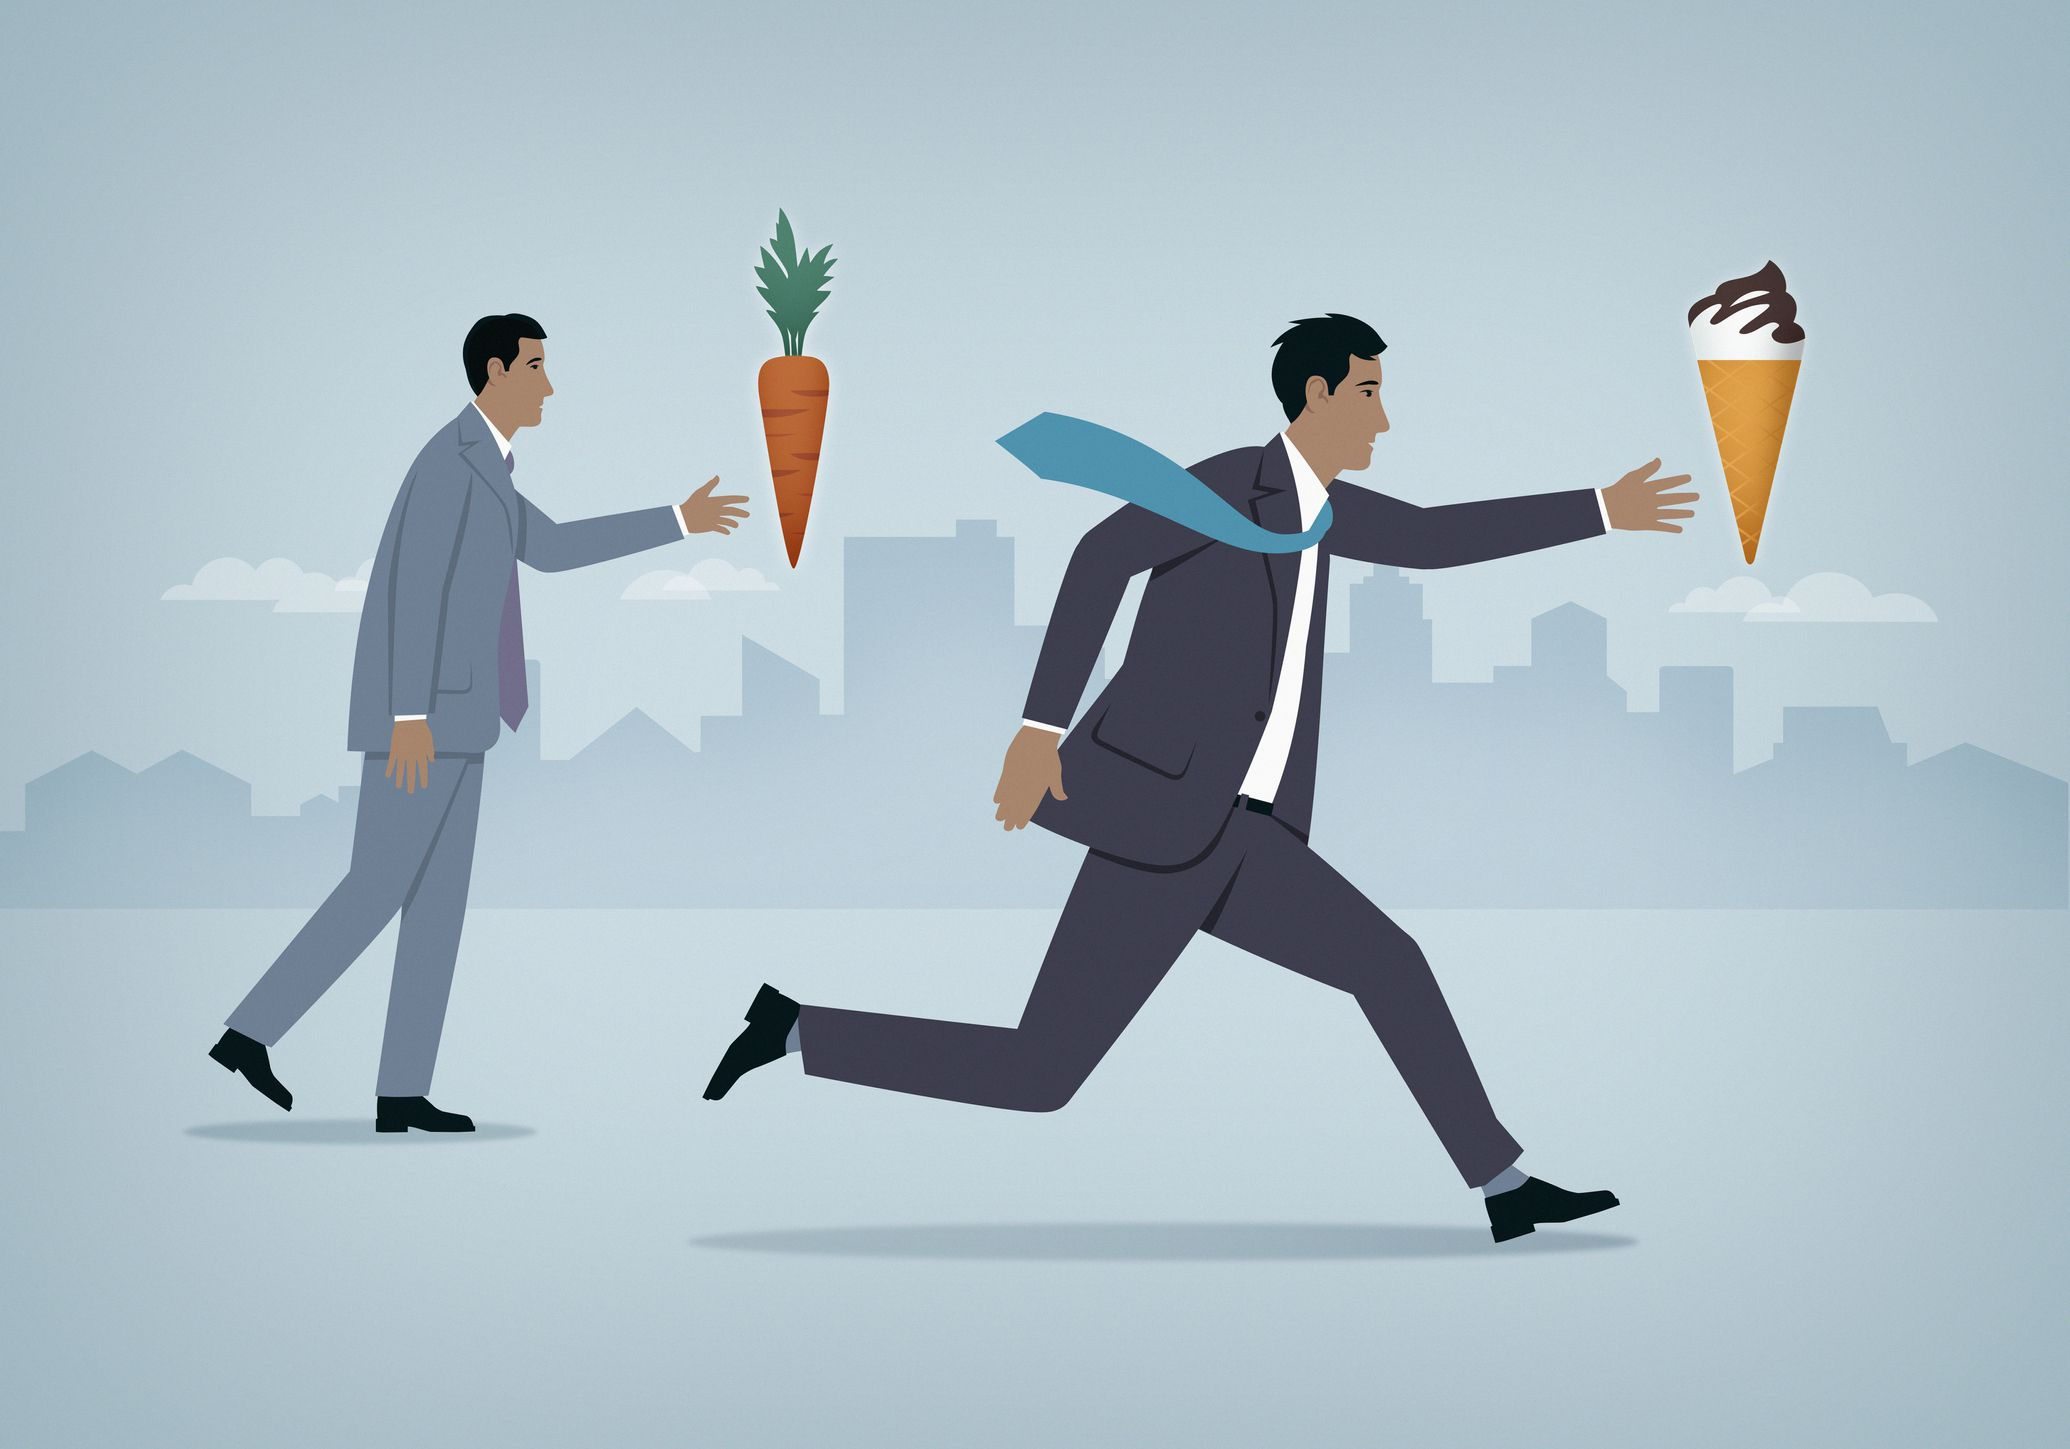 Contrasting good and bad business incentives